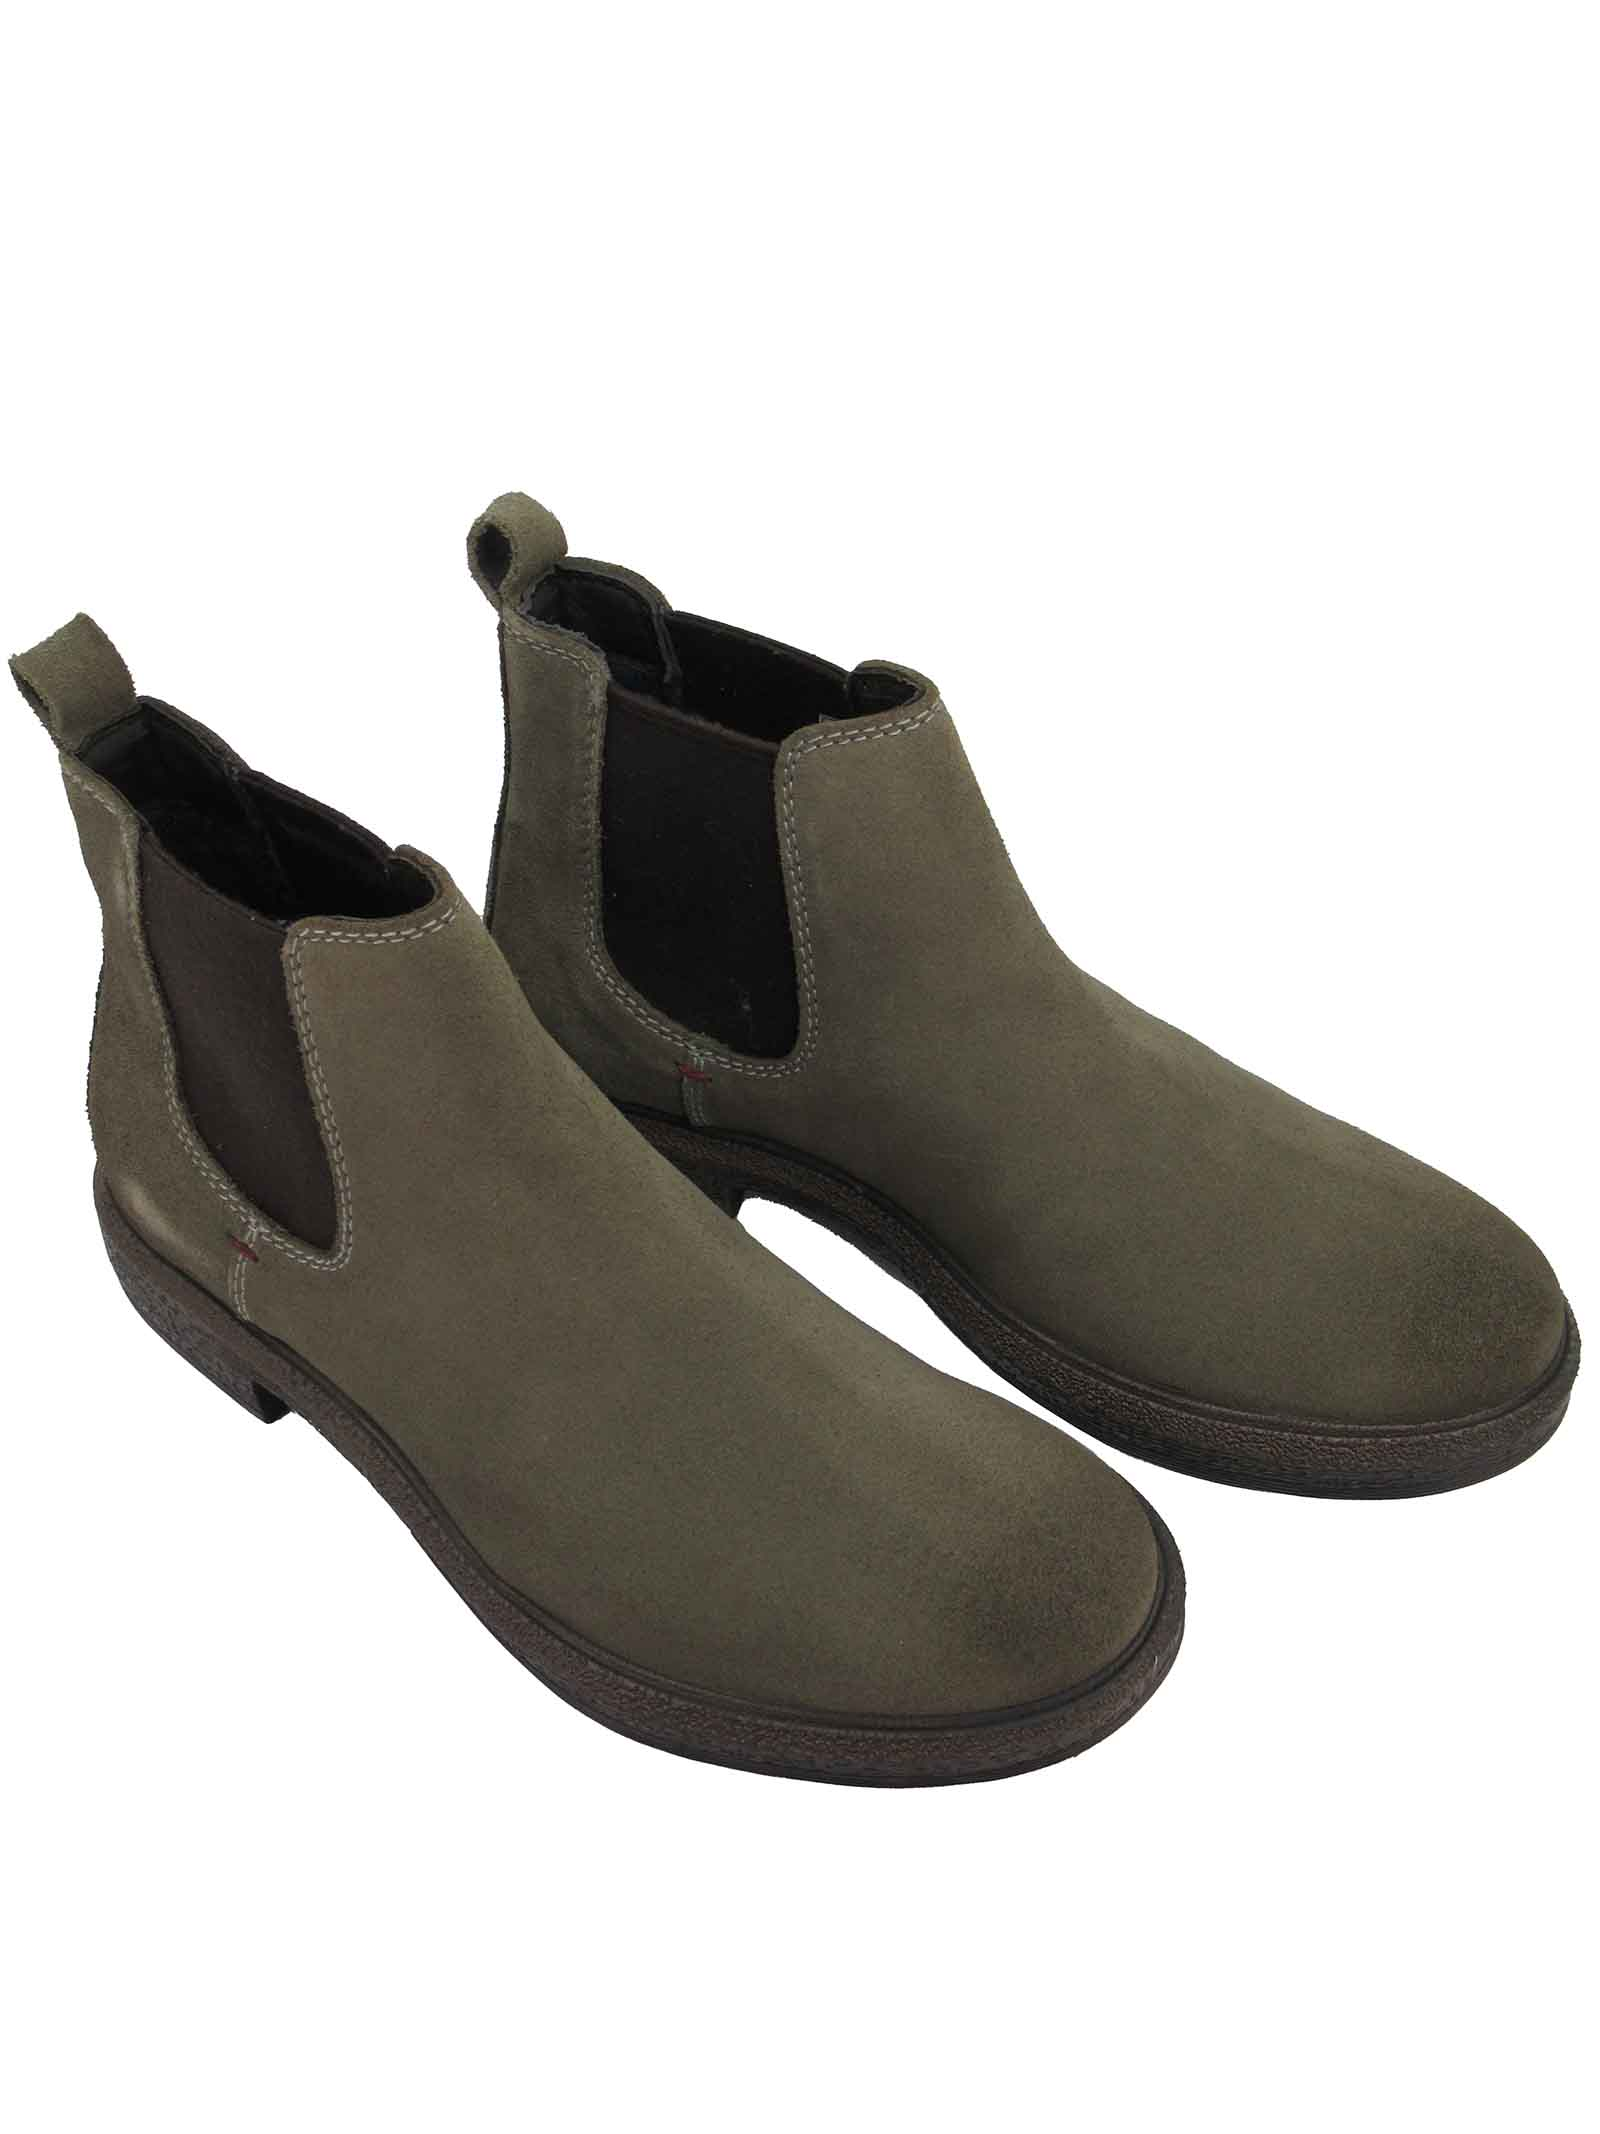 Men's Ankle Boots Custom Chelsea Beatles in Taupe Suede with Rubber Sole Wrangler | Ankle Boots | WM12081A029